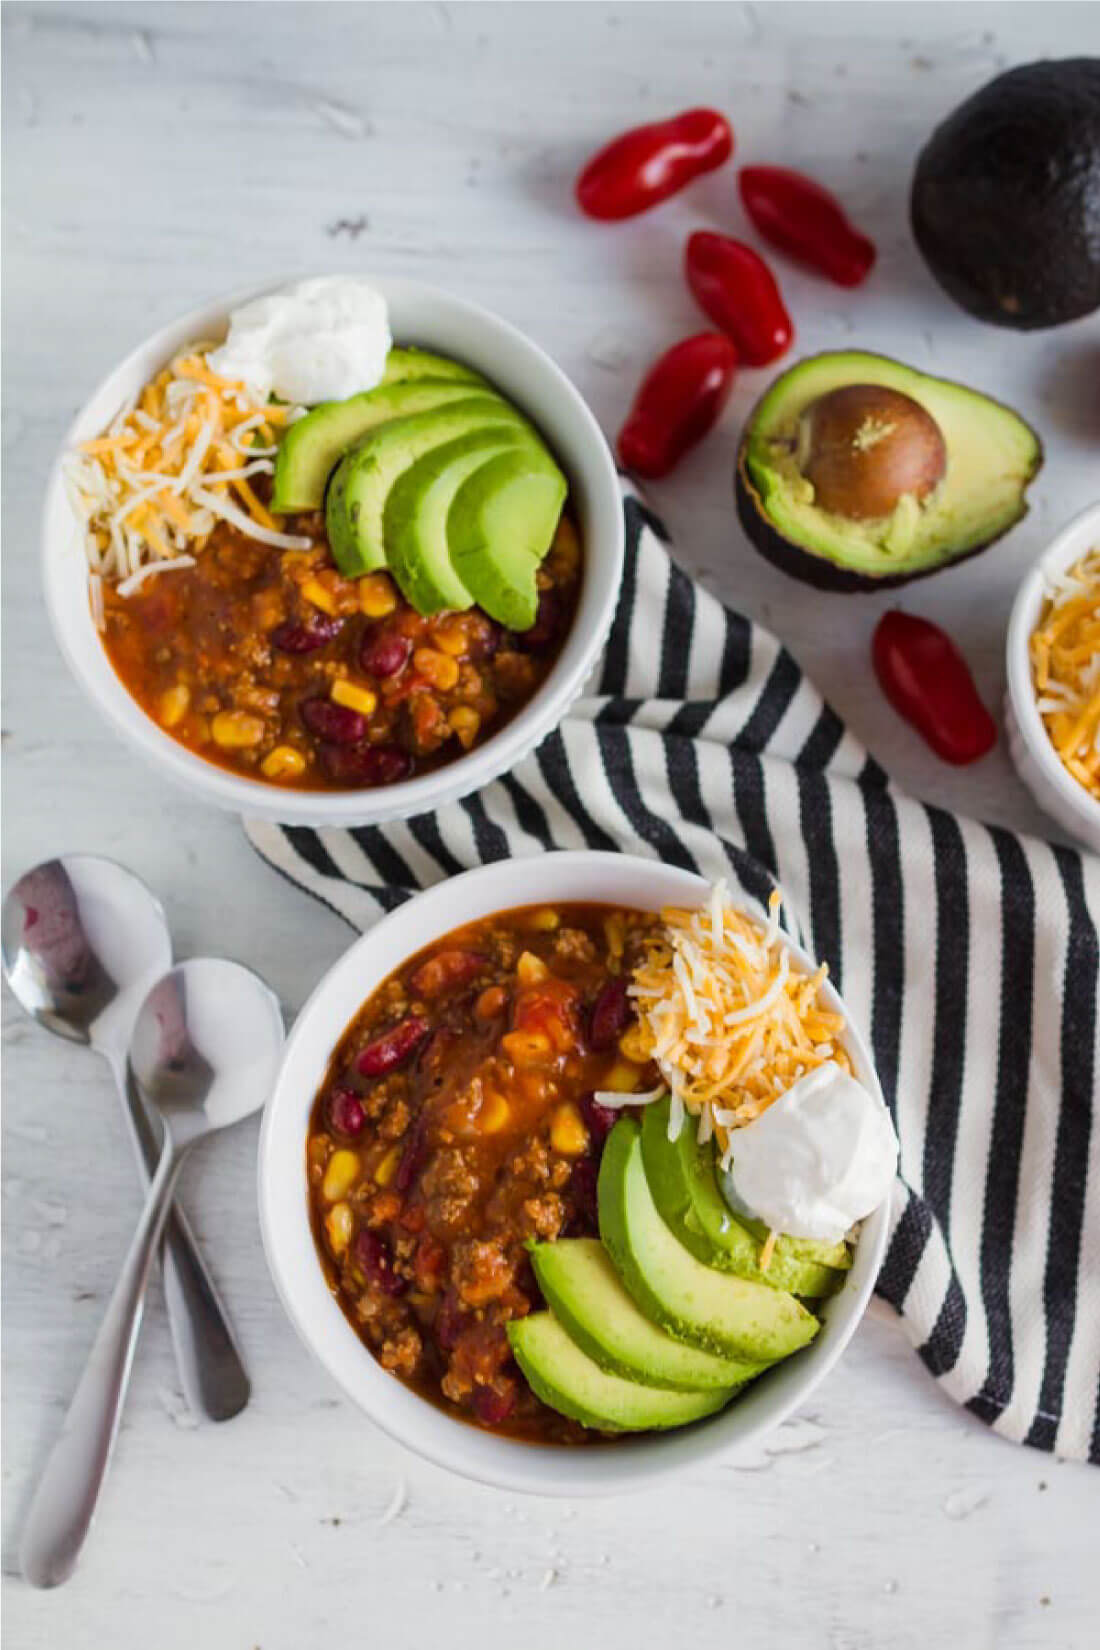 Mom's Taco Soup - a super easy main dish recipe where you throw all the ingredients in the pot and let it simmer. www.thirtyhandmadedays.com